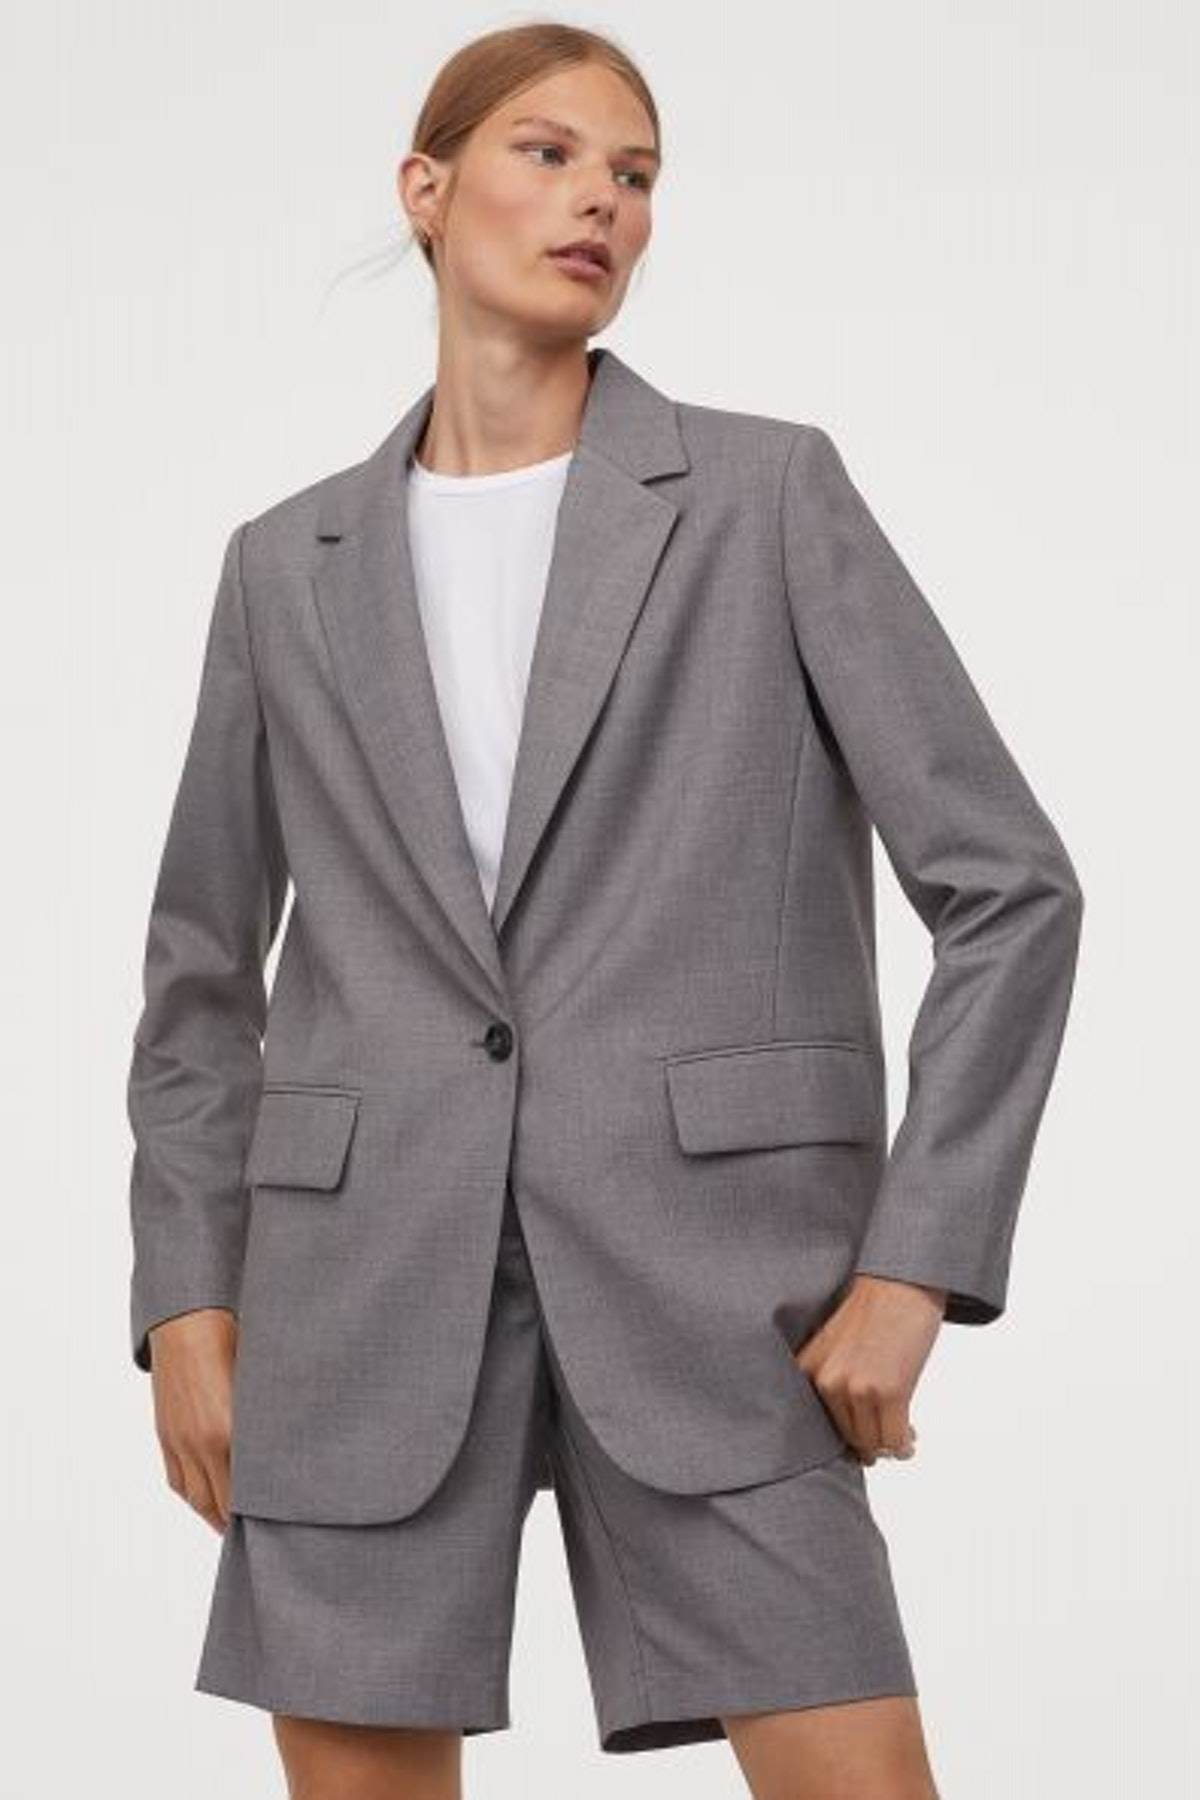 H&M Oversized Jacket in Woven Fabric with Notched Lapels